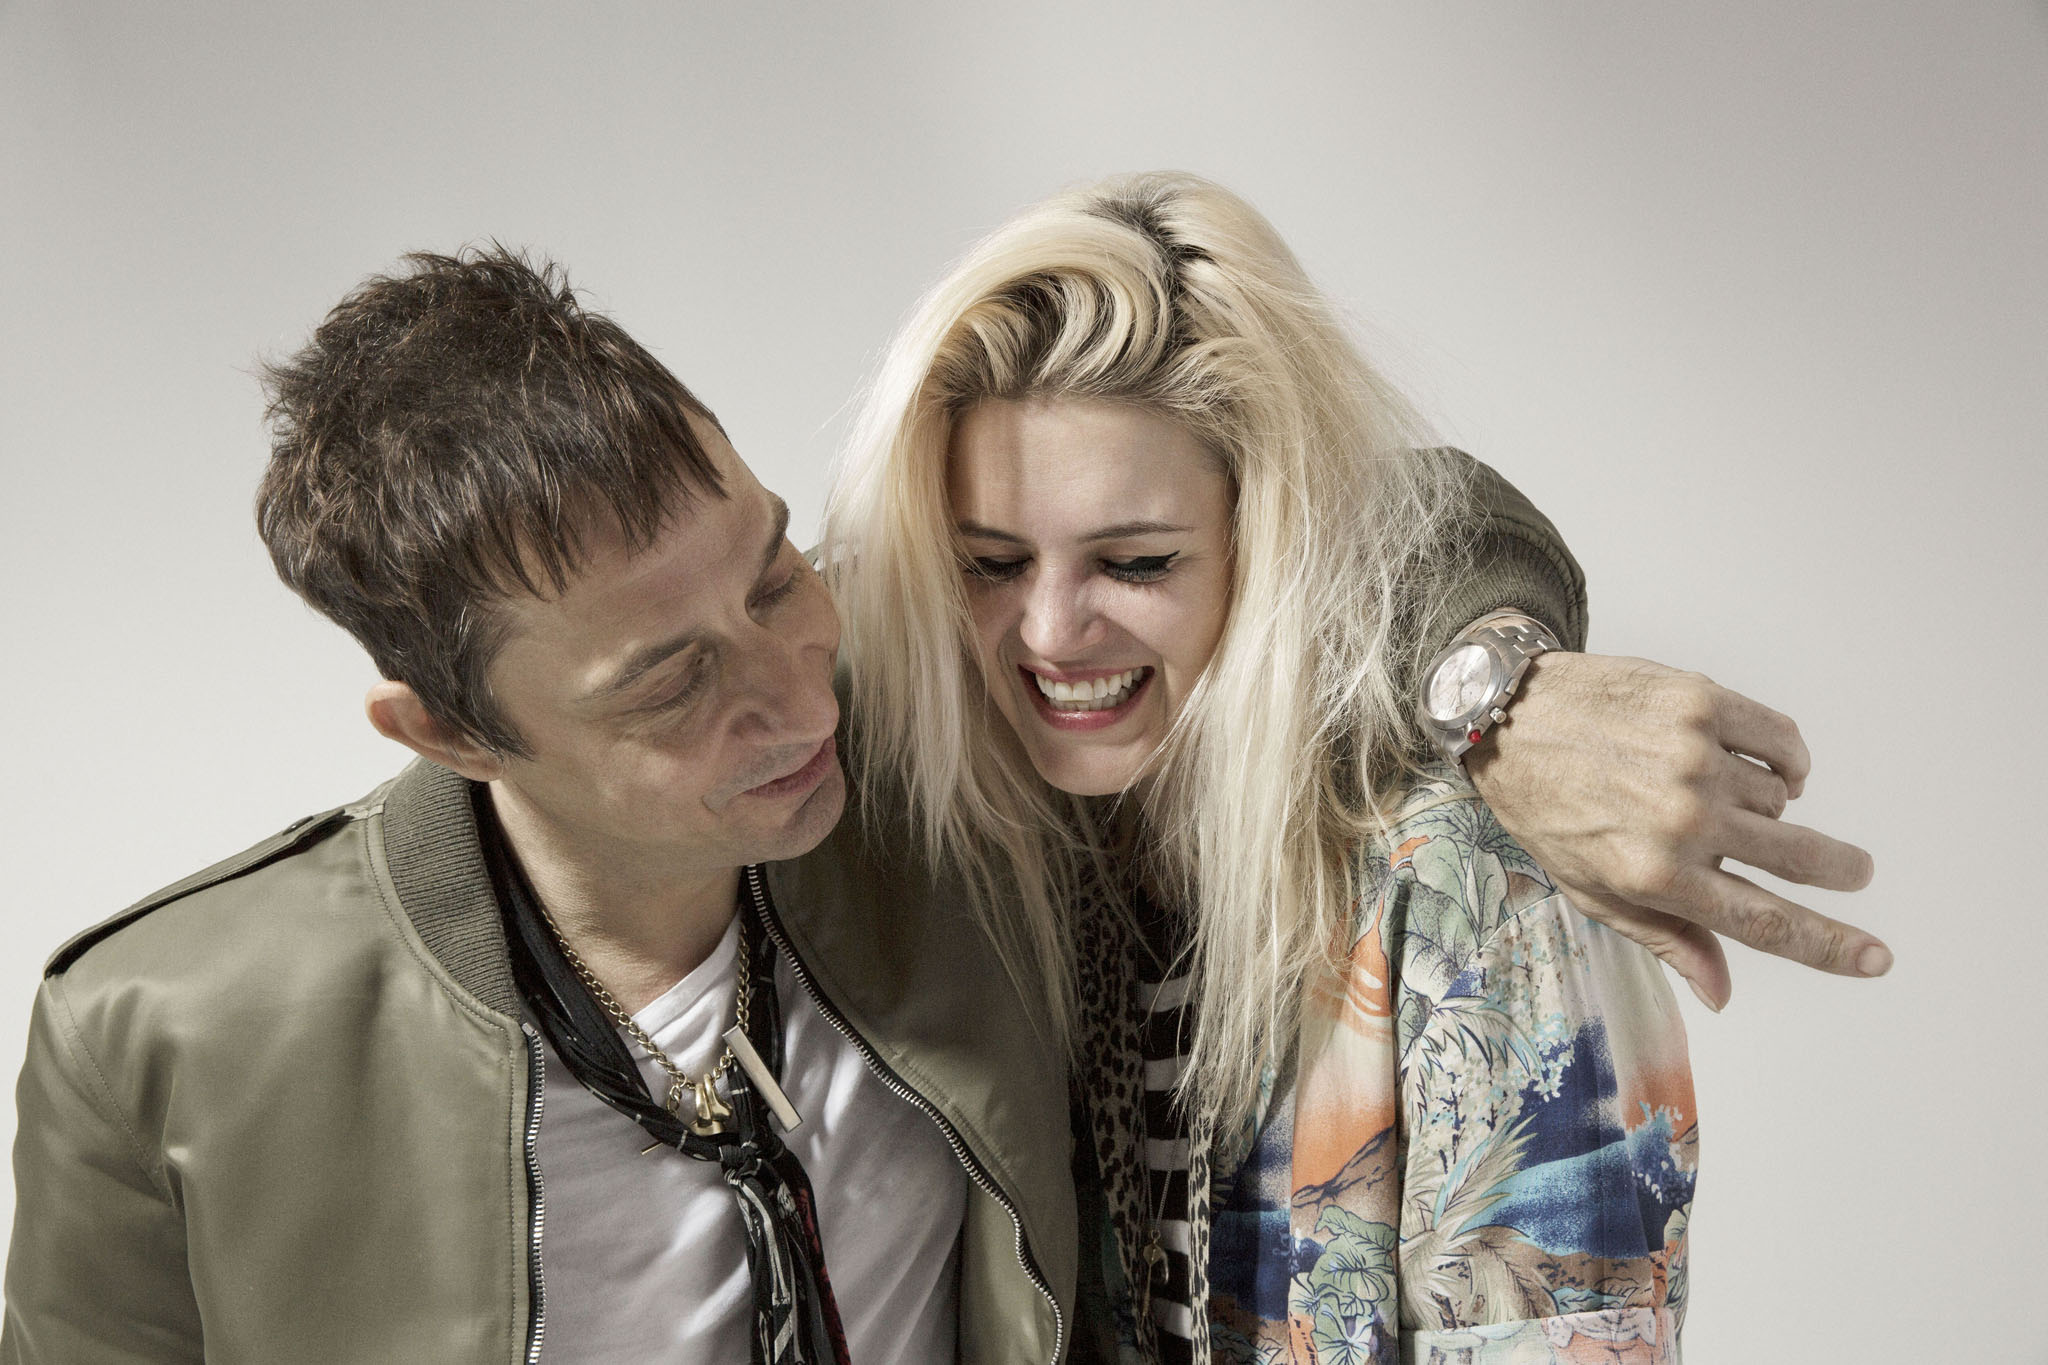 The Kills announce new album 'Ash & Ice', offer up 'Doing It To Death'